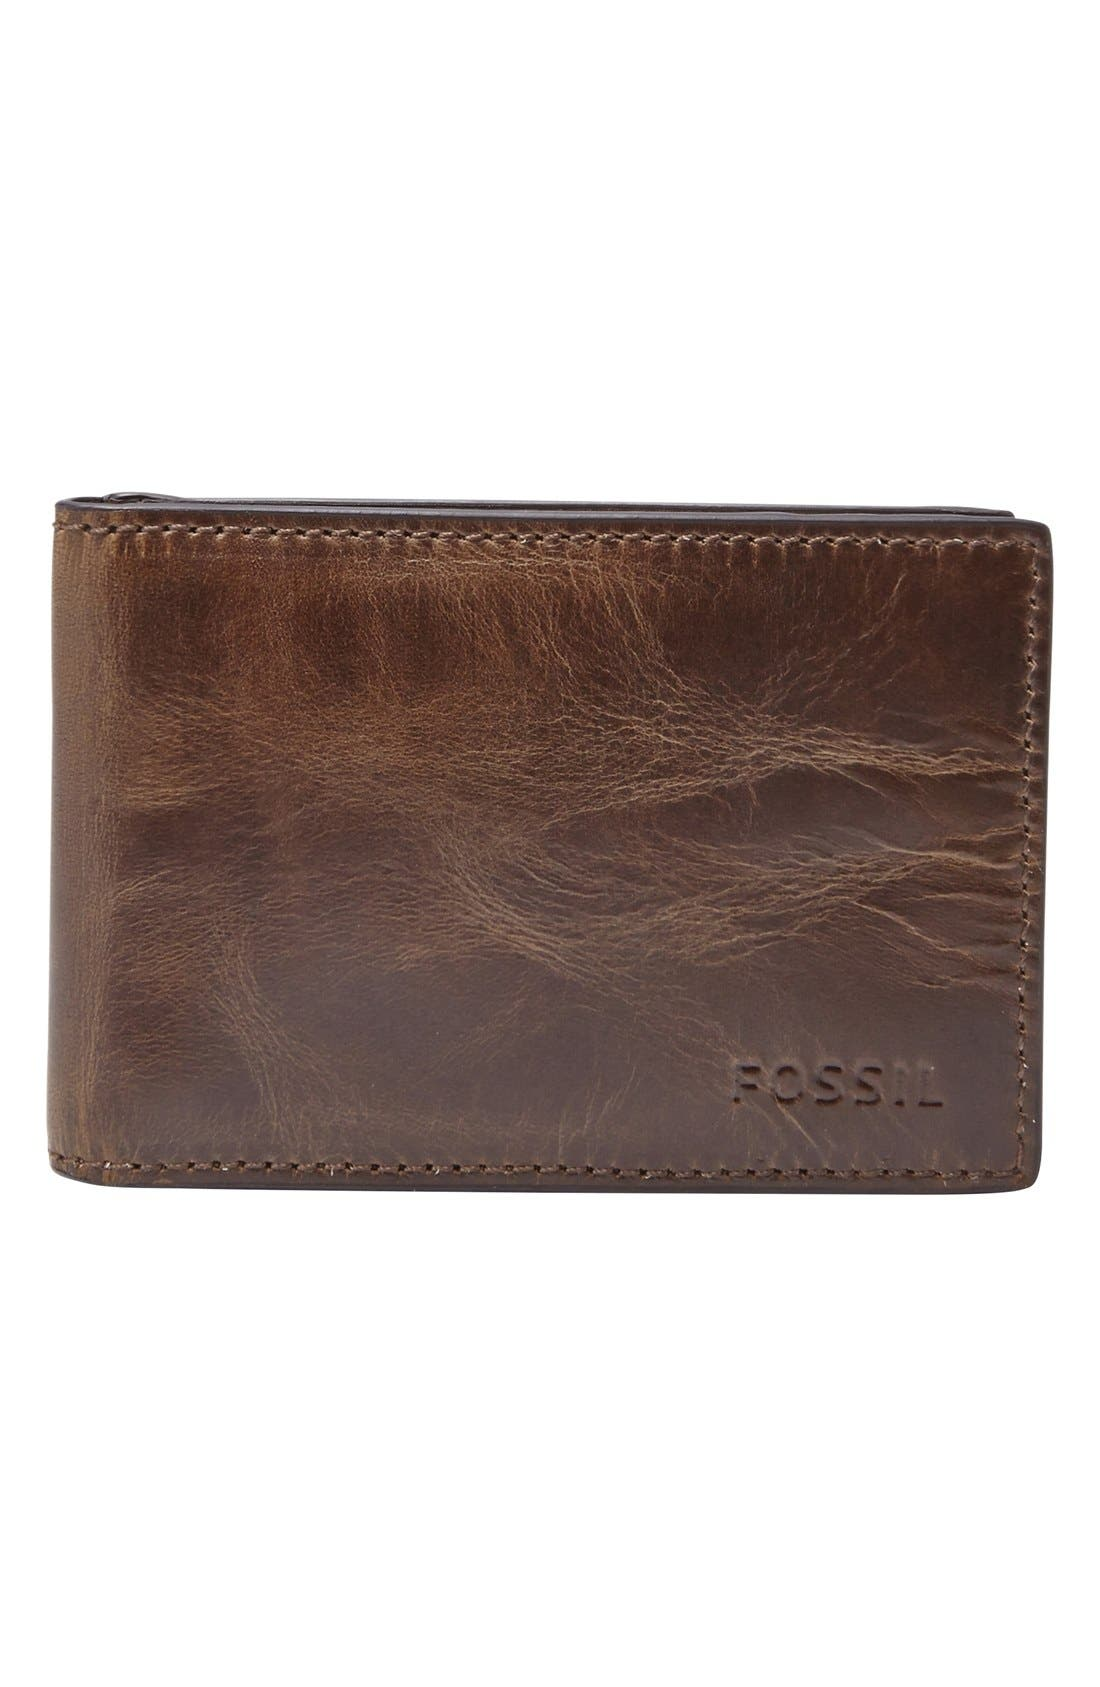 Fossil Derrick Leather Money Clip Bifold Wallet